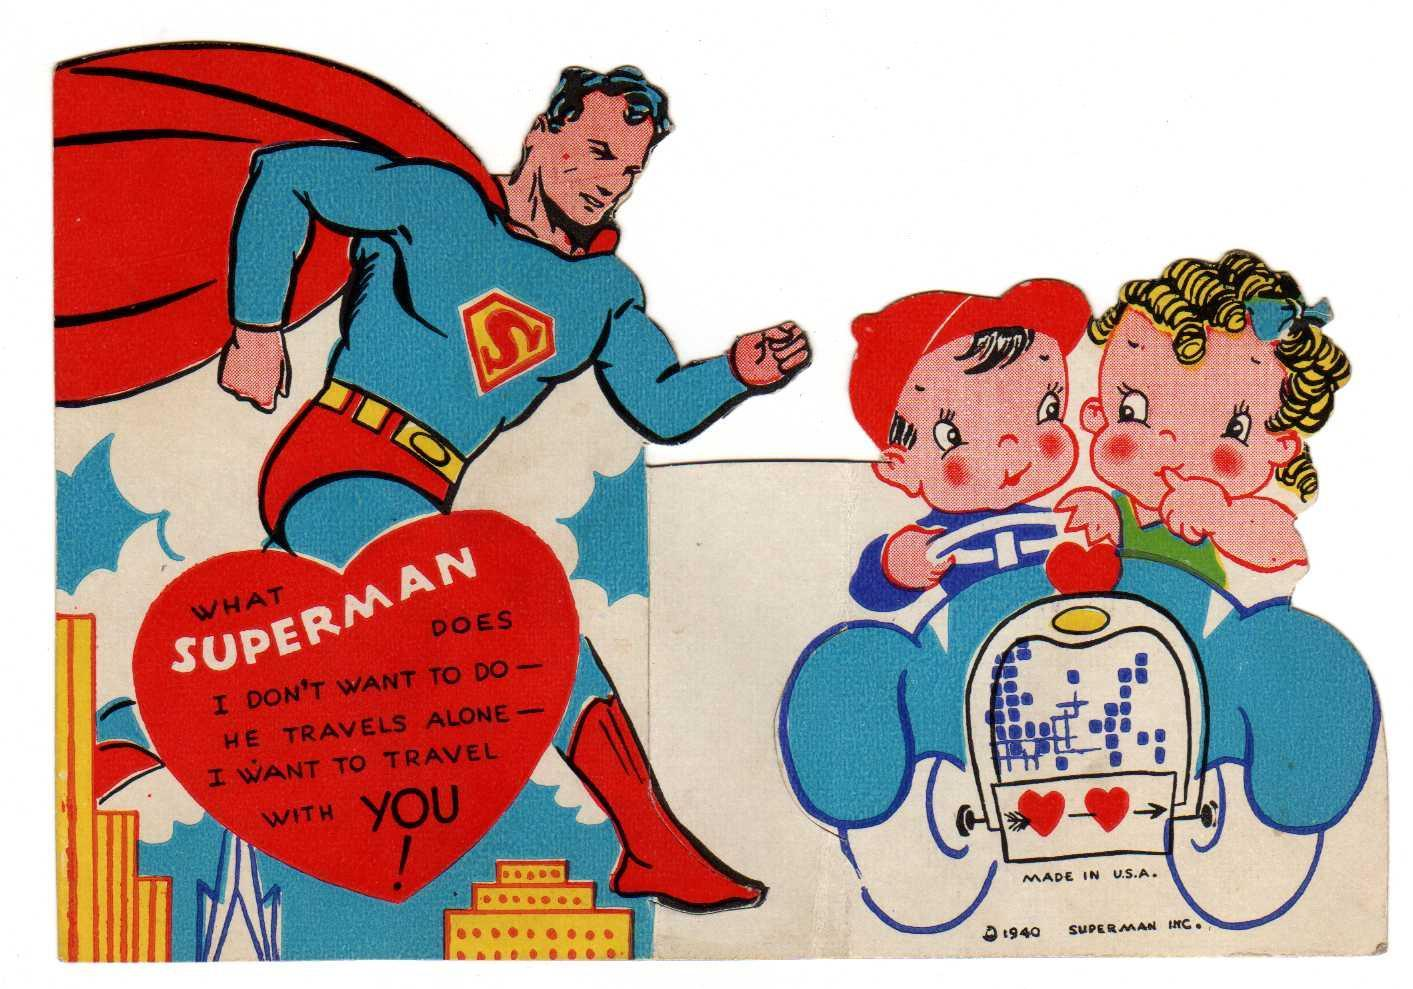 Exceptionally large images of Superman (OFFICIAL THREAD) Superman_1940